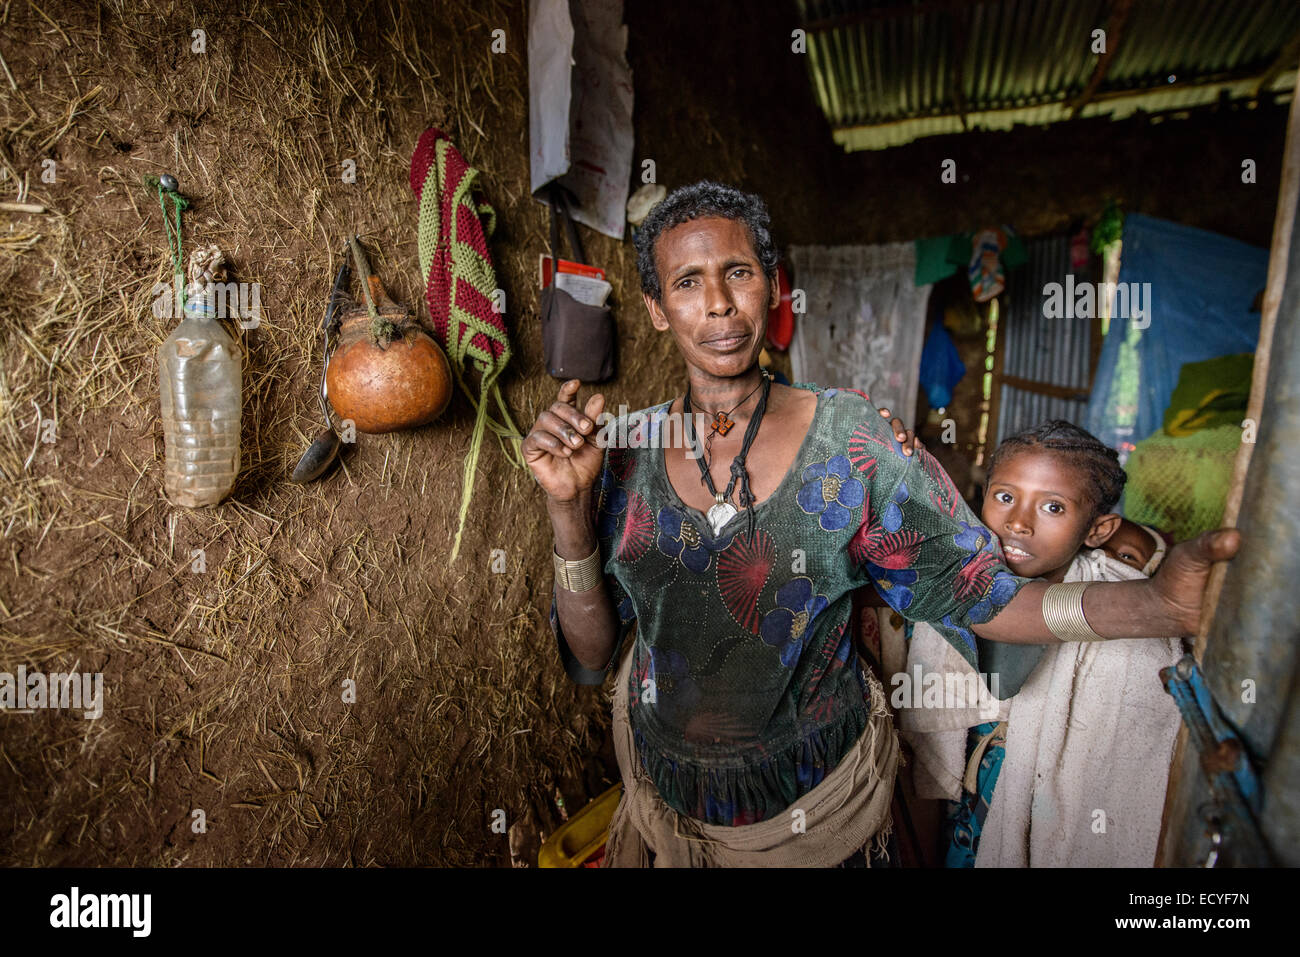 A mother at her traditional house, Ethiopia - Stock Image